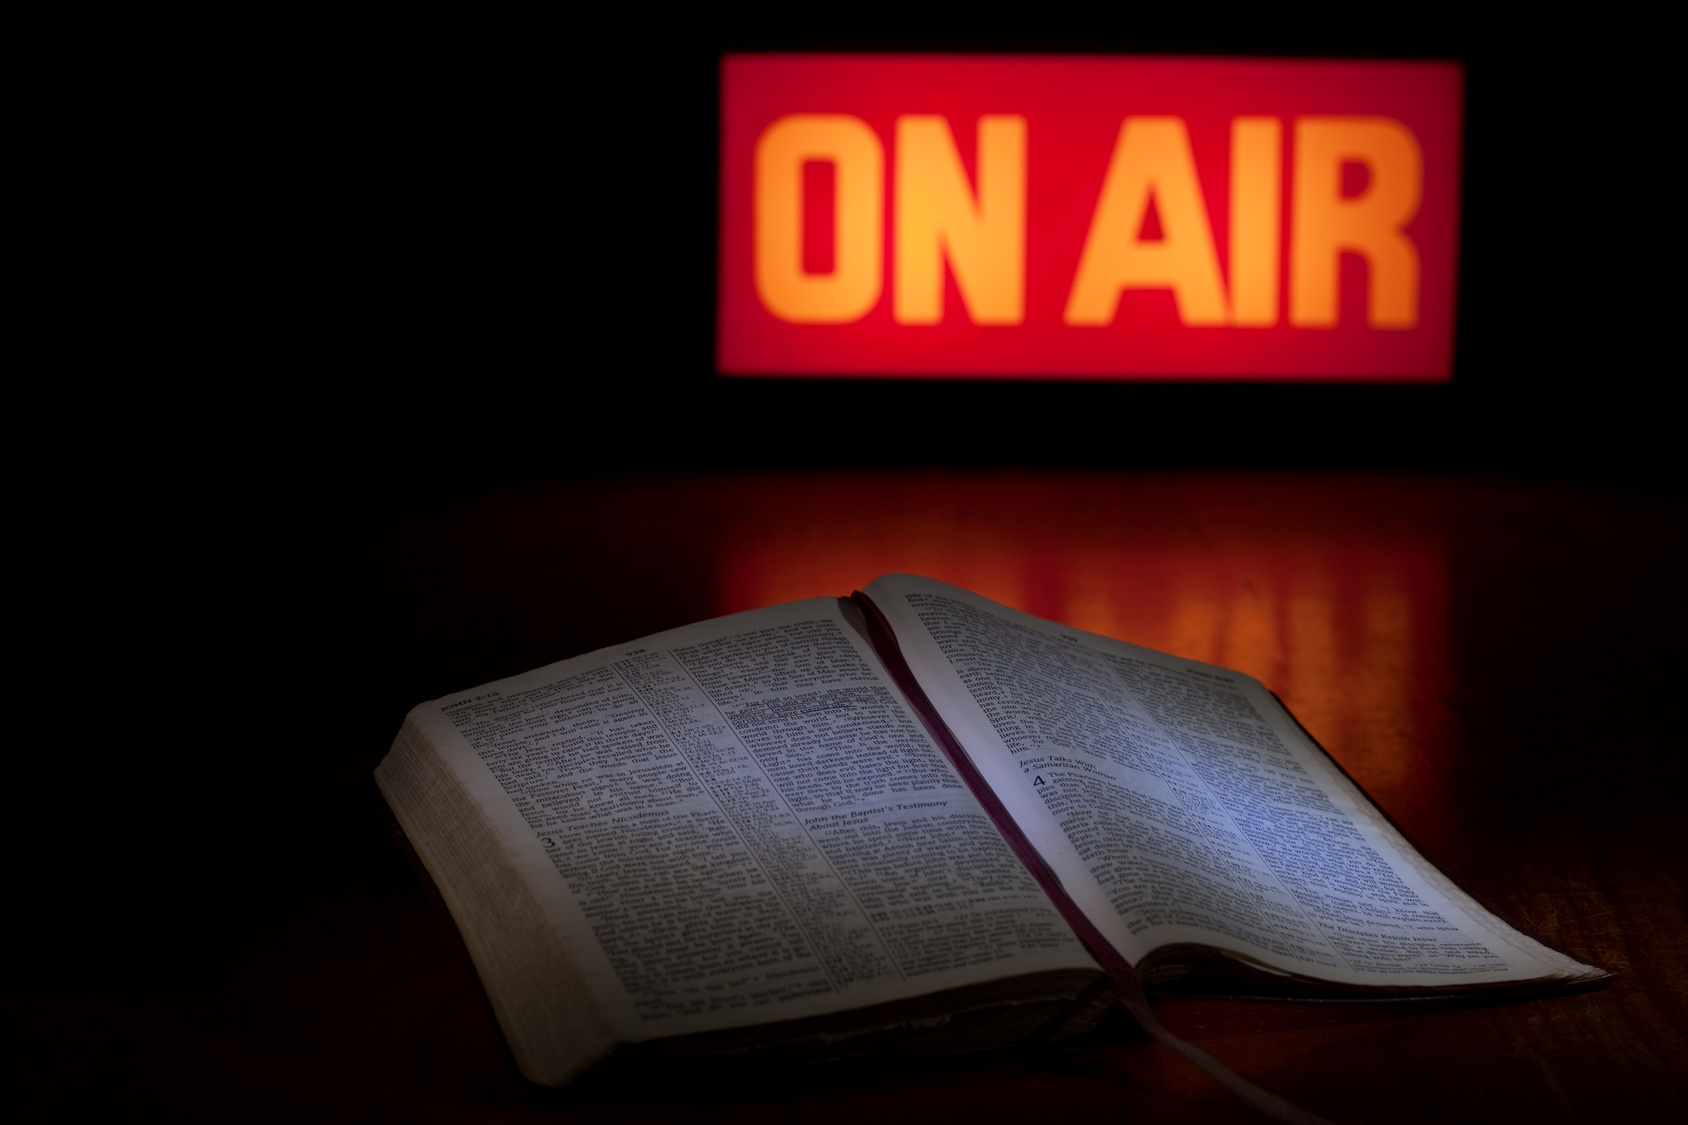 Truth Matters Radio Ministry - You can hear us on EquipFM at 9:30am Monday-Friday on 91.7 Lynchburg or 93.9 Roanoke.